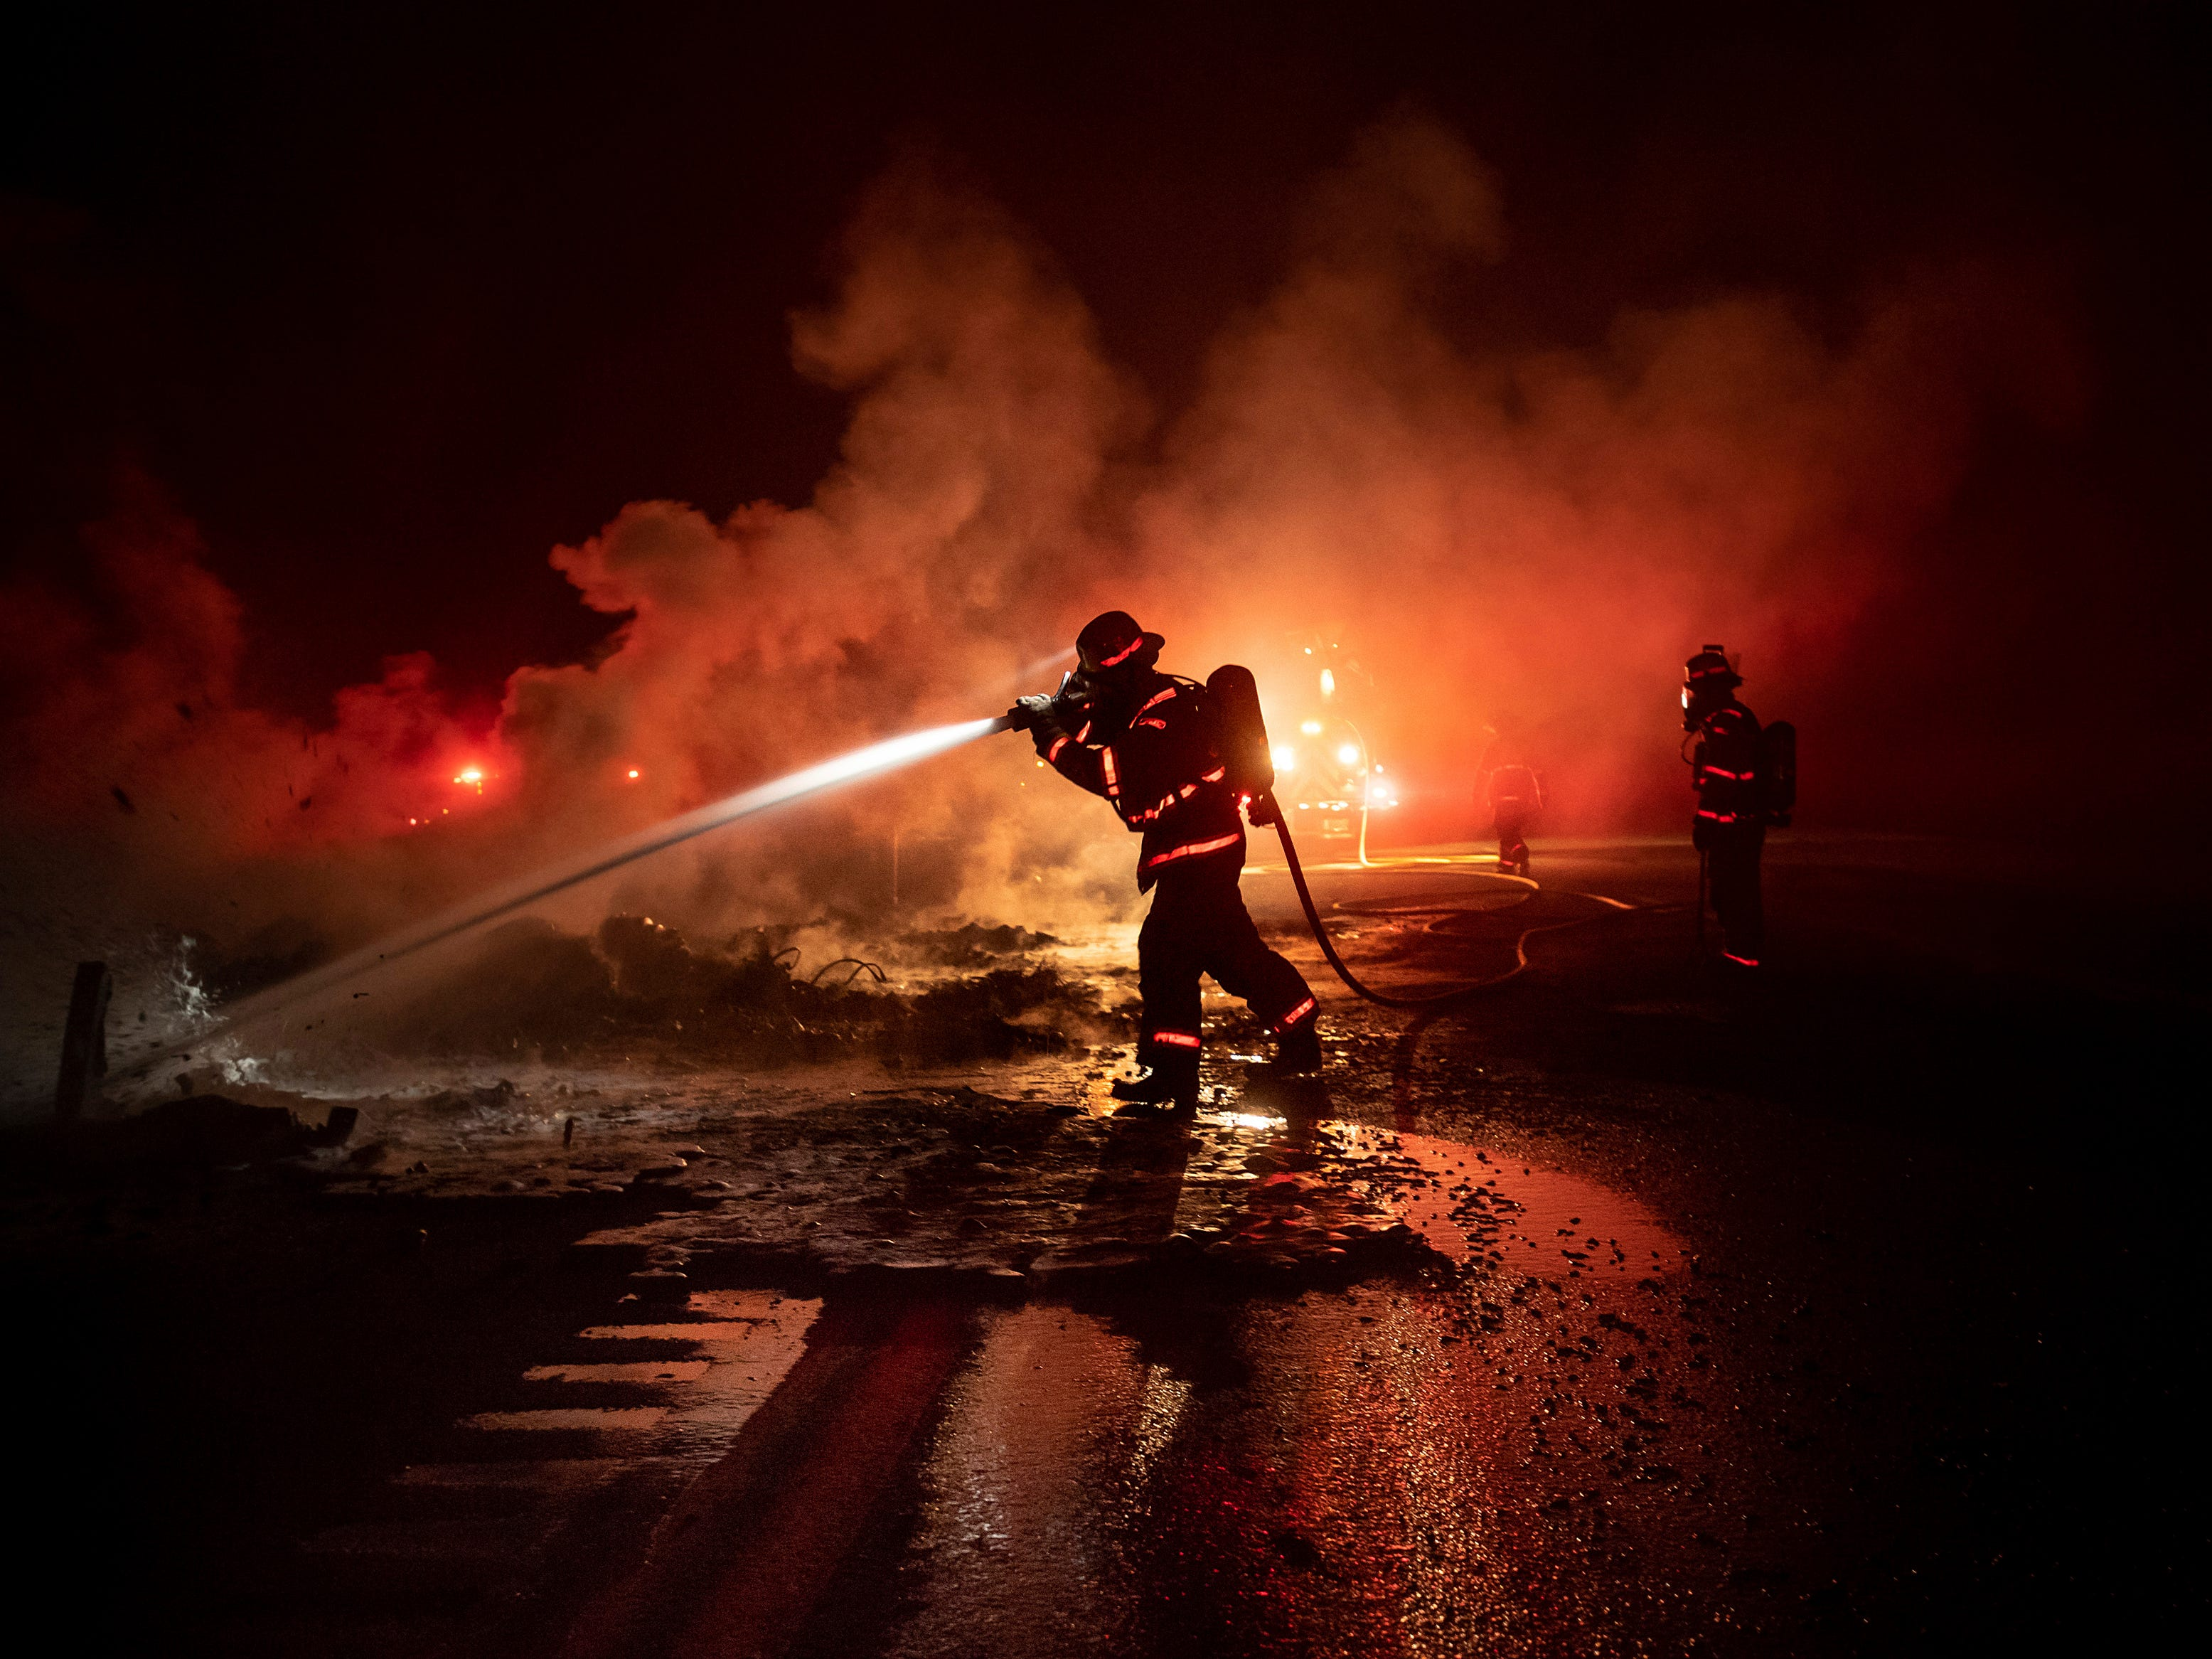 A firefighter sprays the smoldering remains of a vehicle on Interstate 5 as the Delta Fire burns in the Shasta-Trinity National Forest, Calif., Sept. 5, 2018. Parked trucks lined more than two miles of the highway as both directions remained closed to traffic.